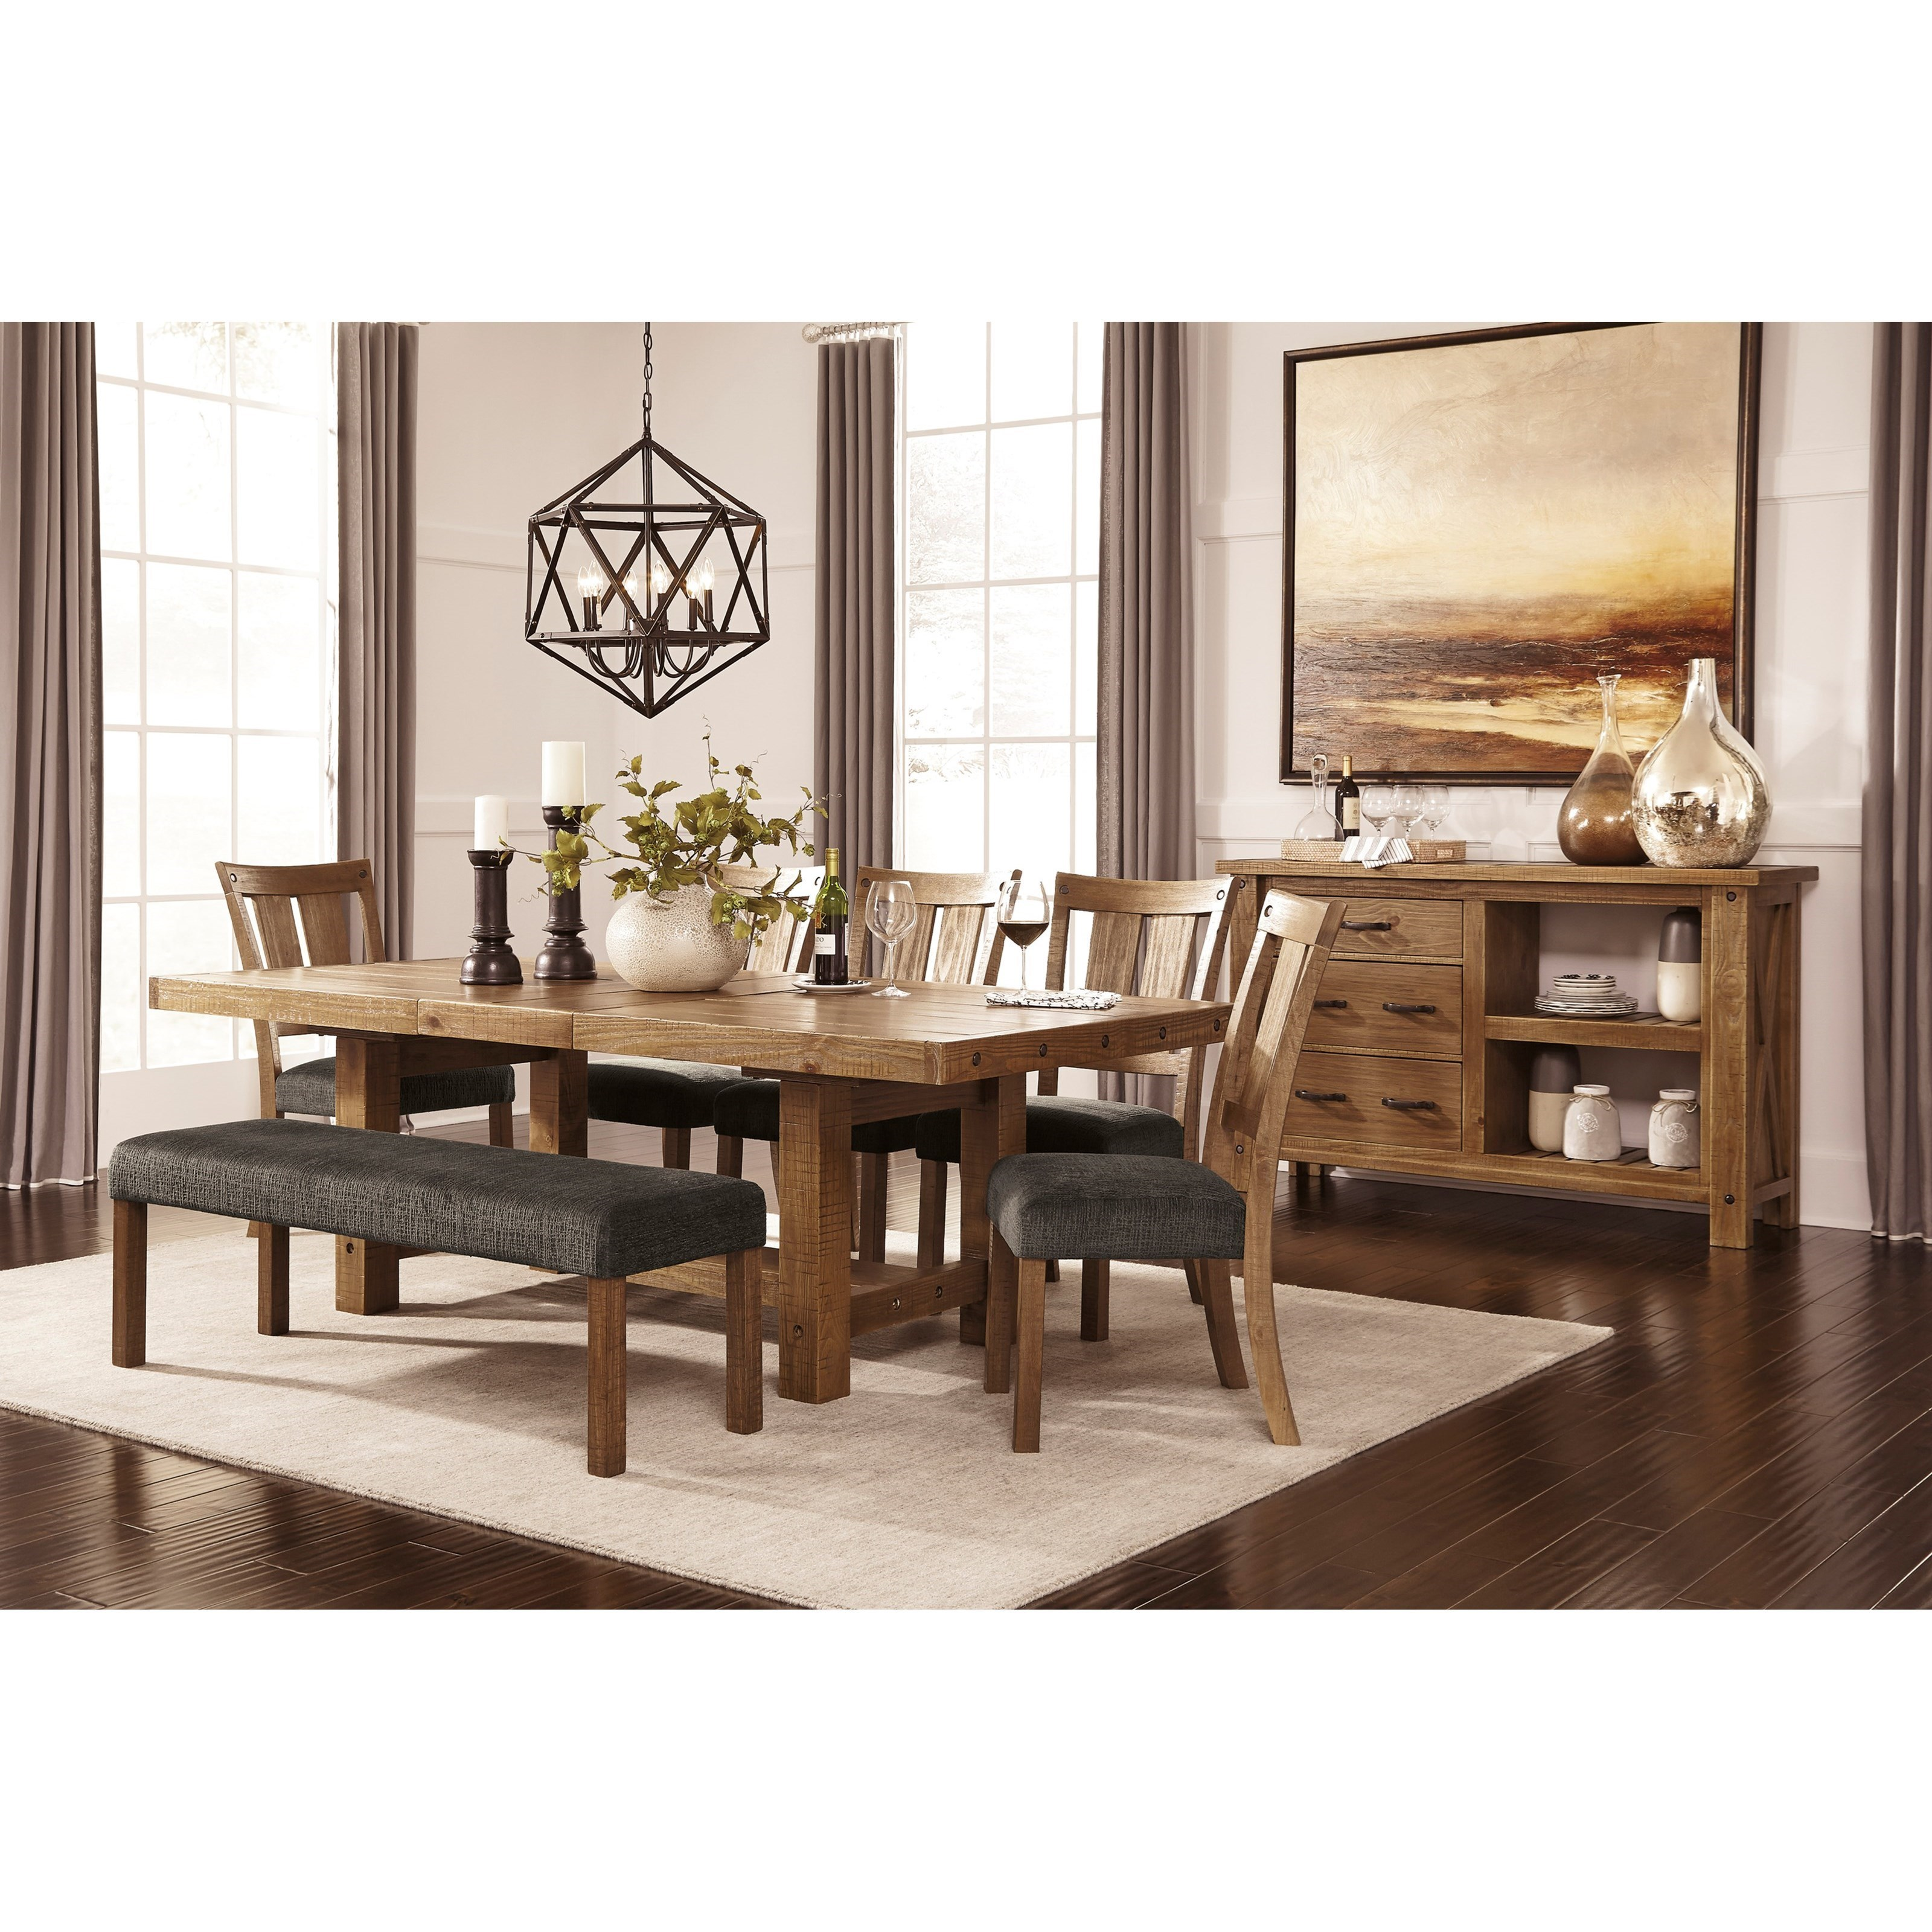 Signature Design By Ashley TamiloCasual Dining Room Group